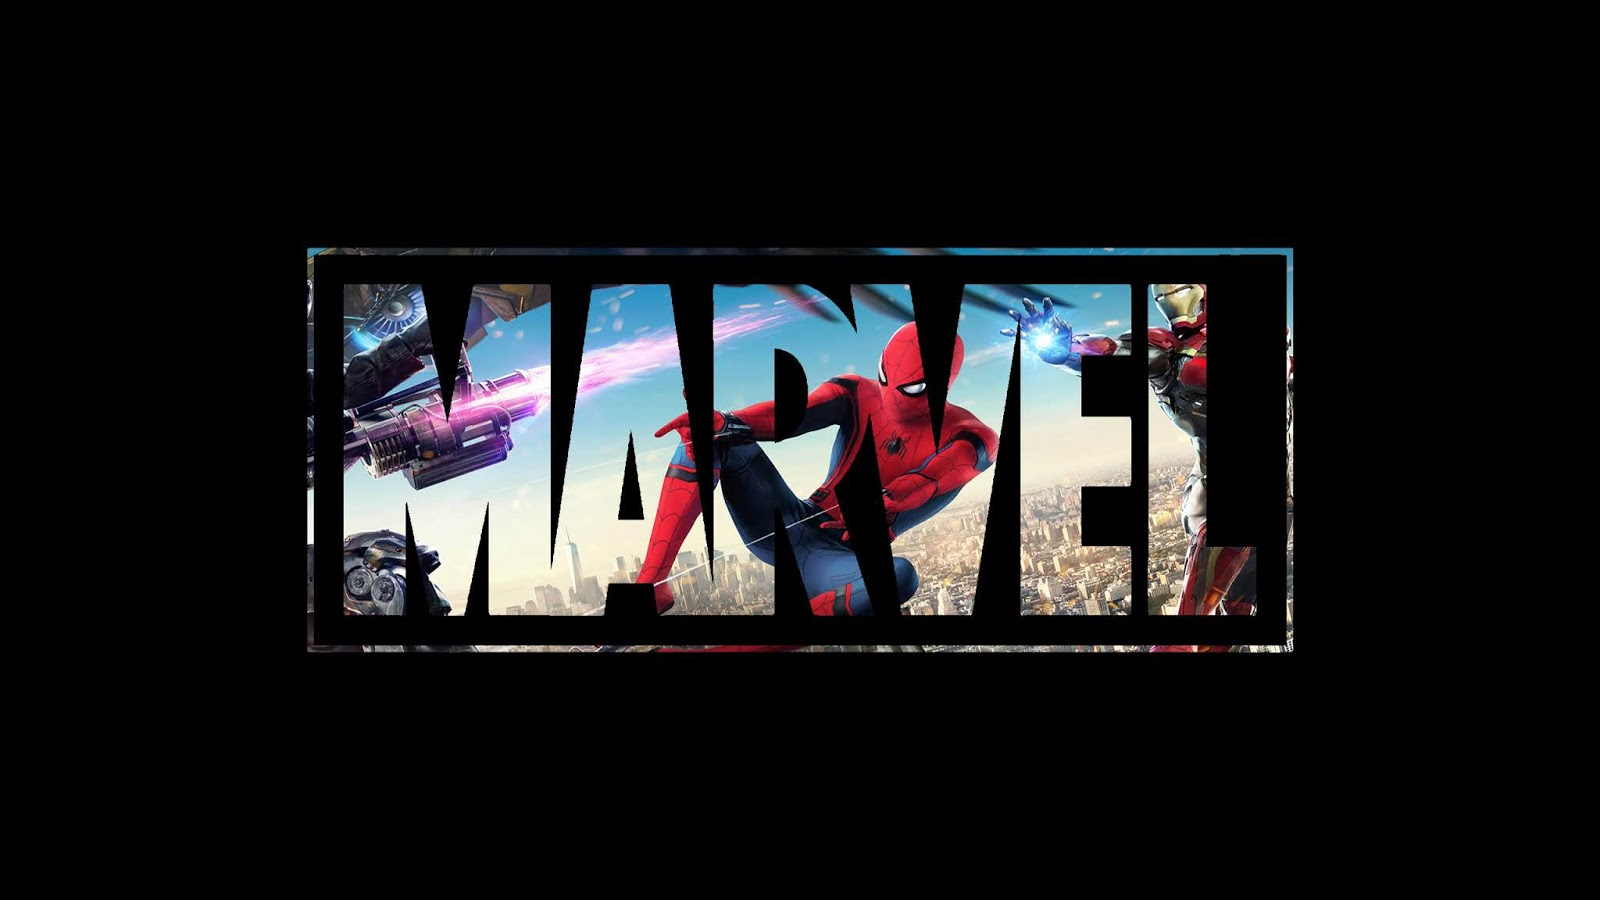 Marvel desktop wallpaper